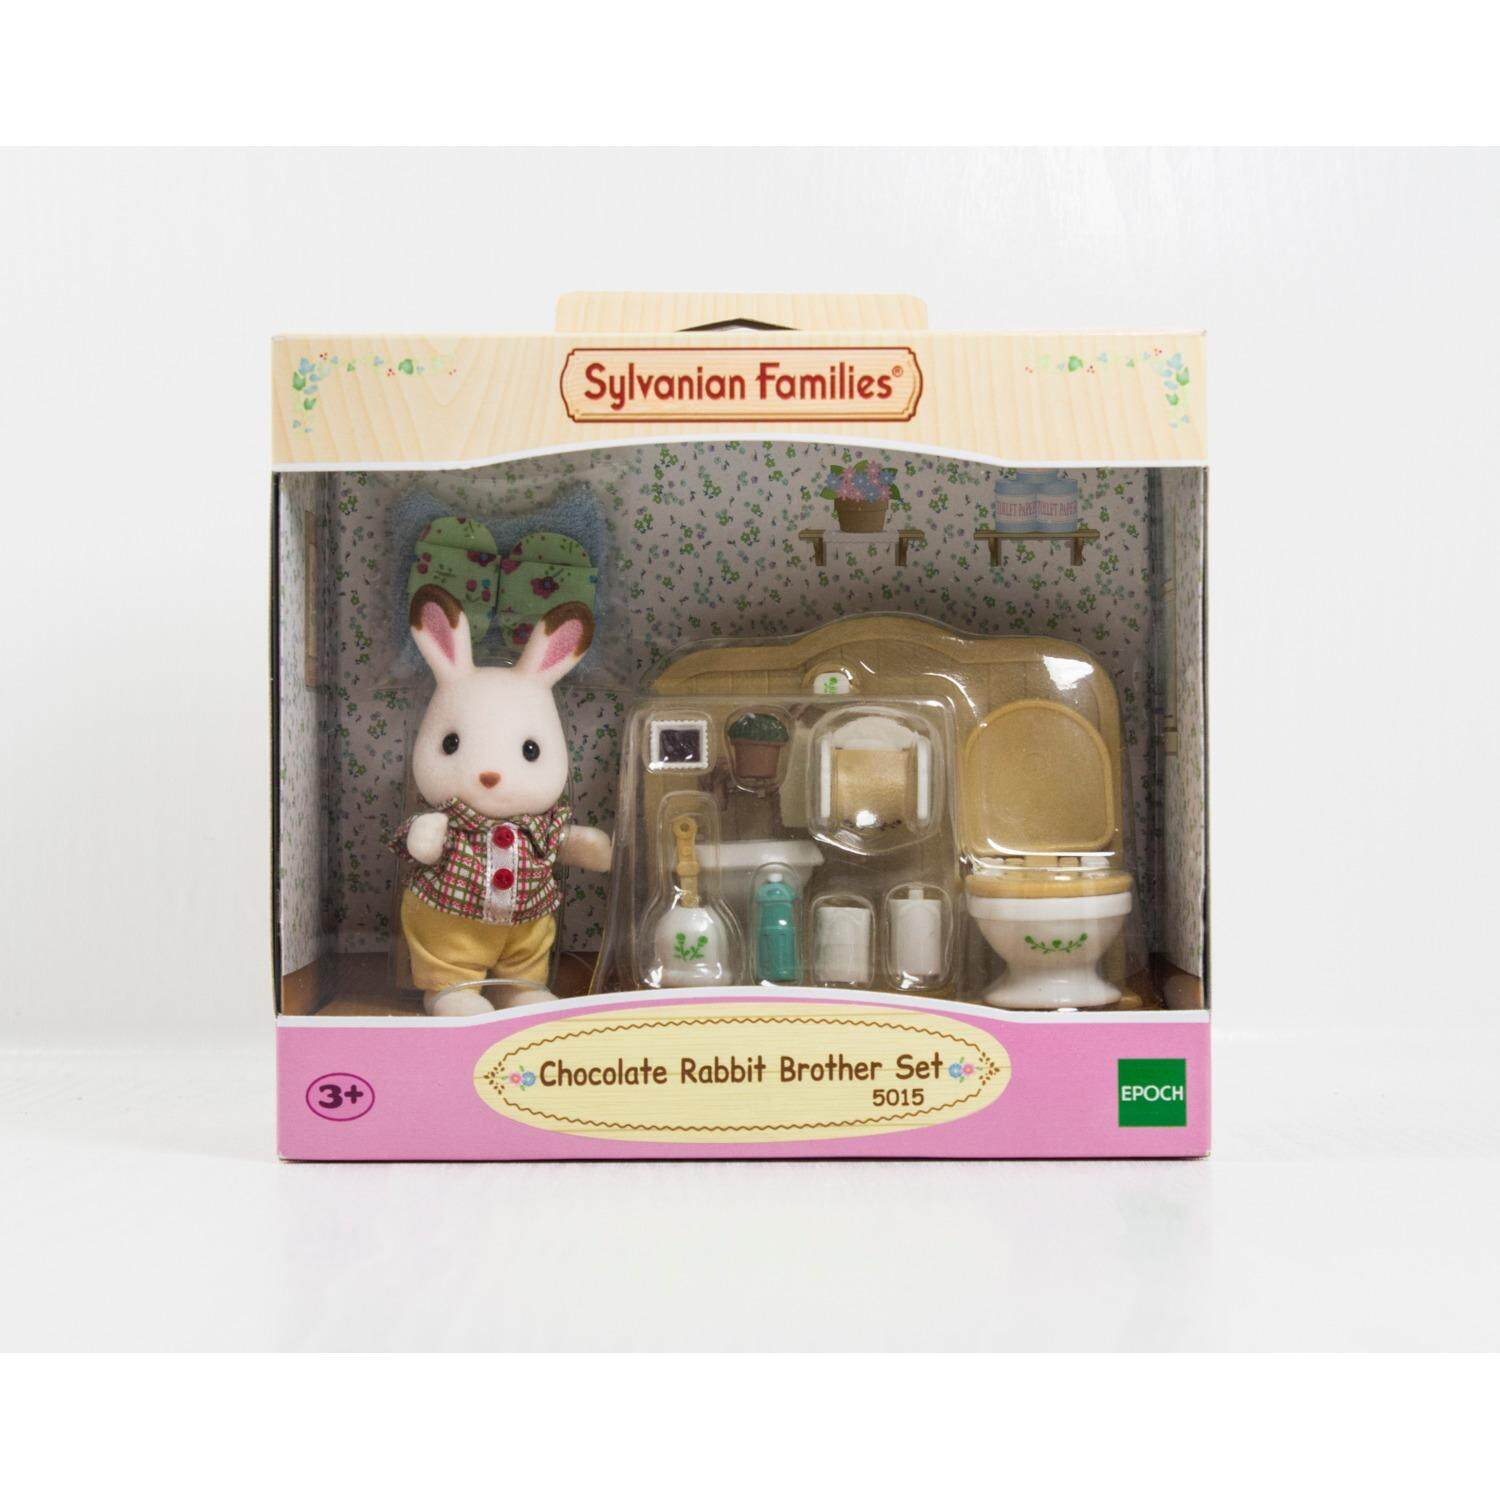 Action Figures Collectibles Buy At Sylvanian Families Bott Ant 9 Chocolate Rabbit Brother Set